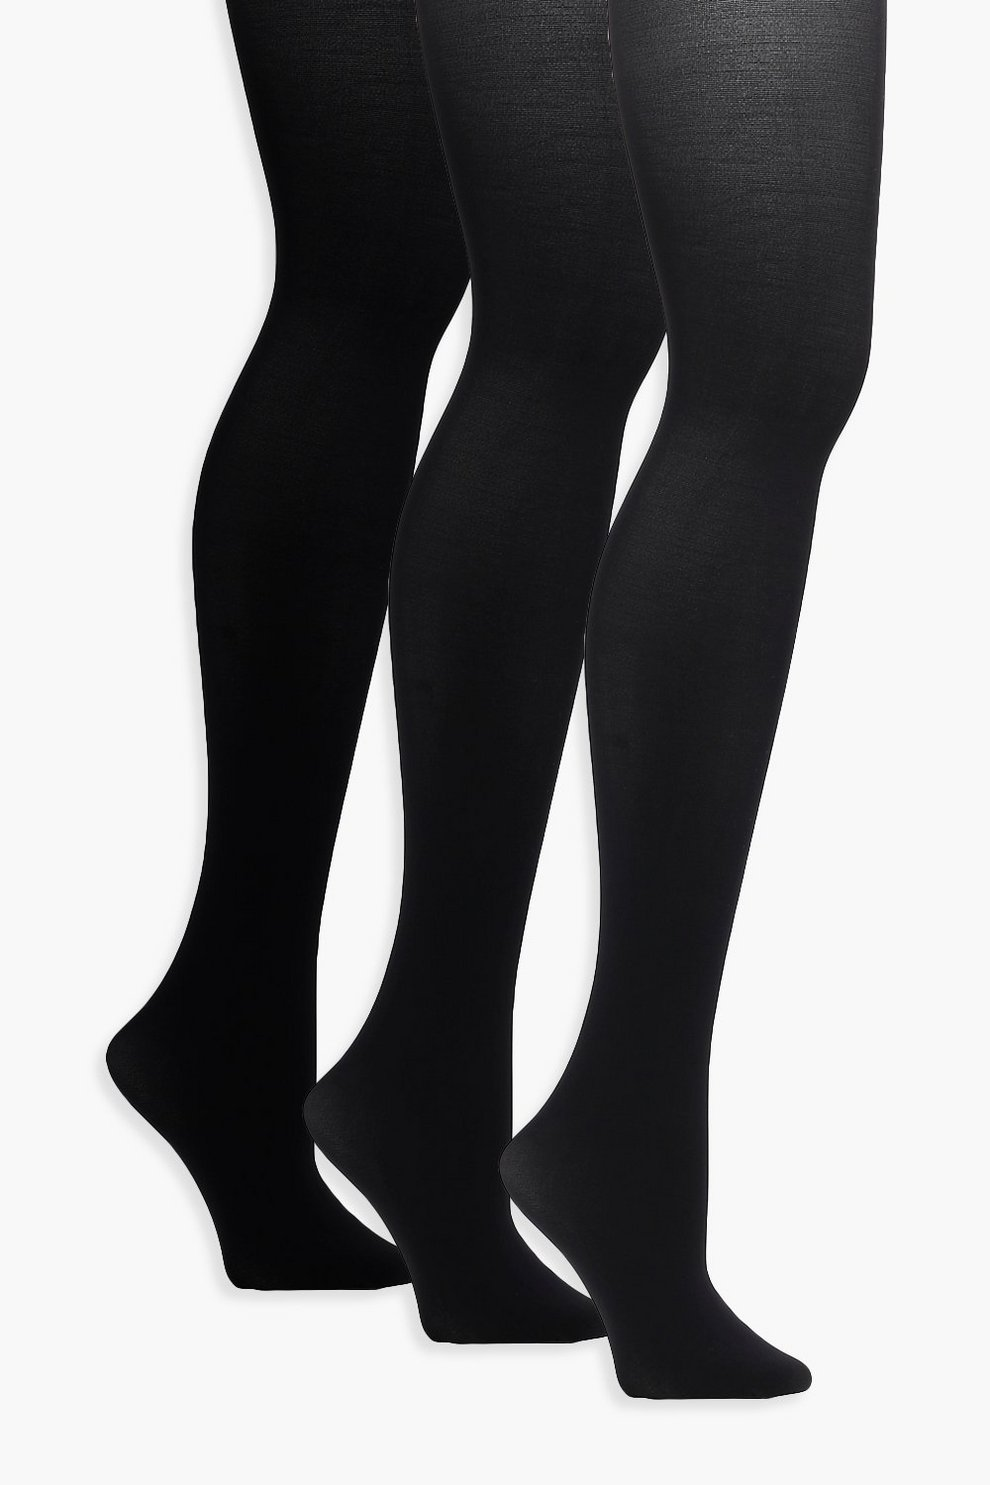 18f92ef68 Womens Black Jo 3pk Soft Touch Luxury 40 Denier Tights. Hover to zoom